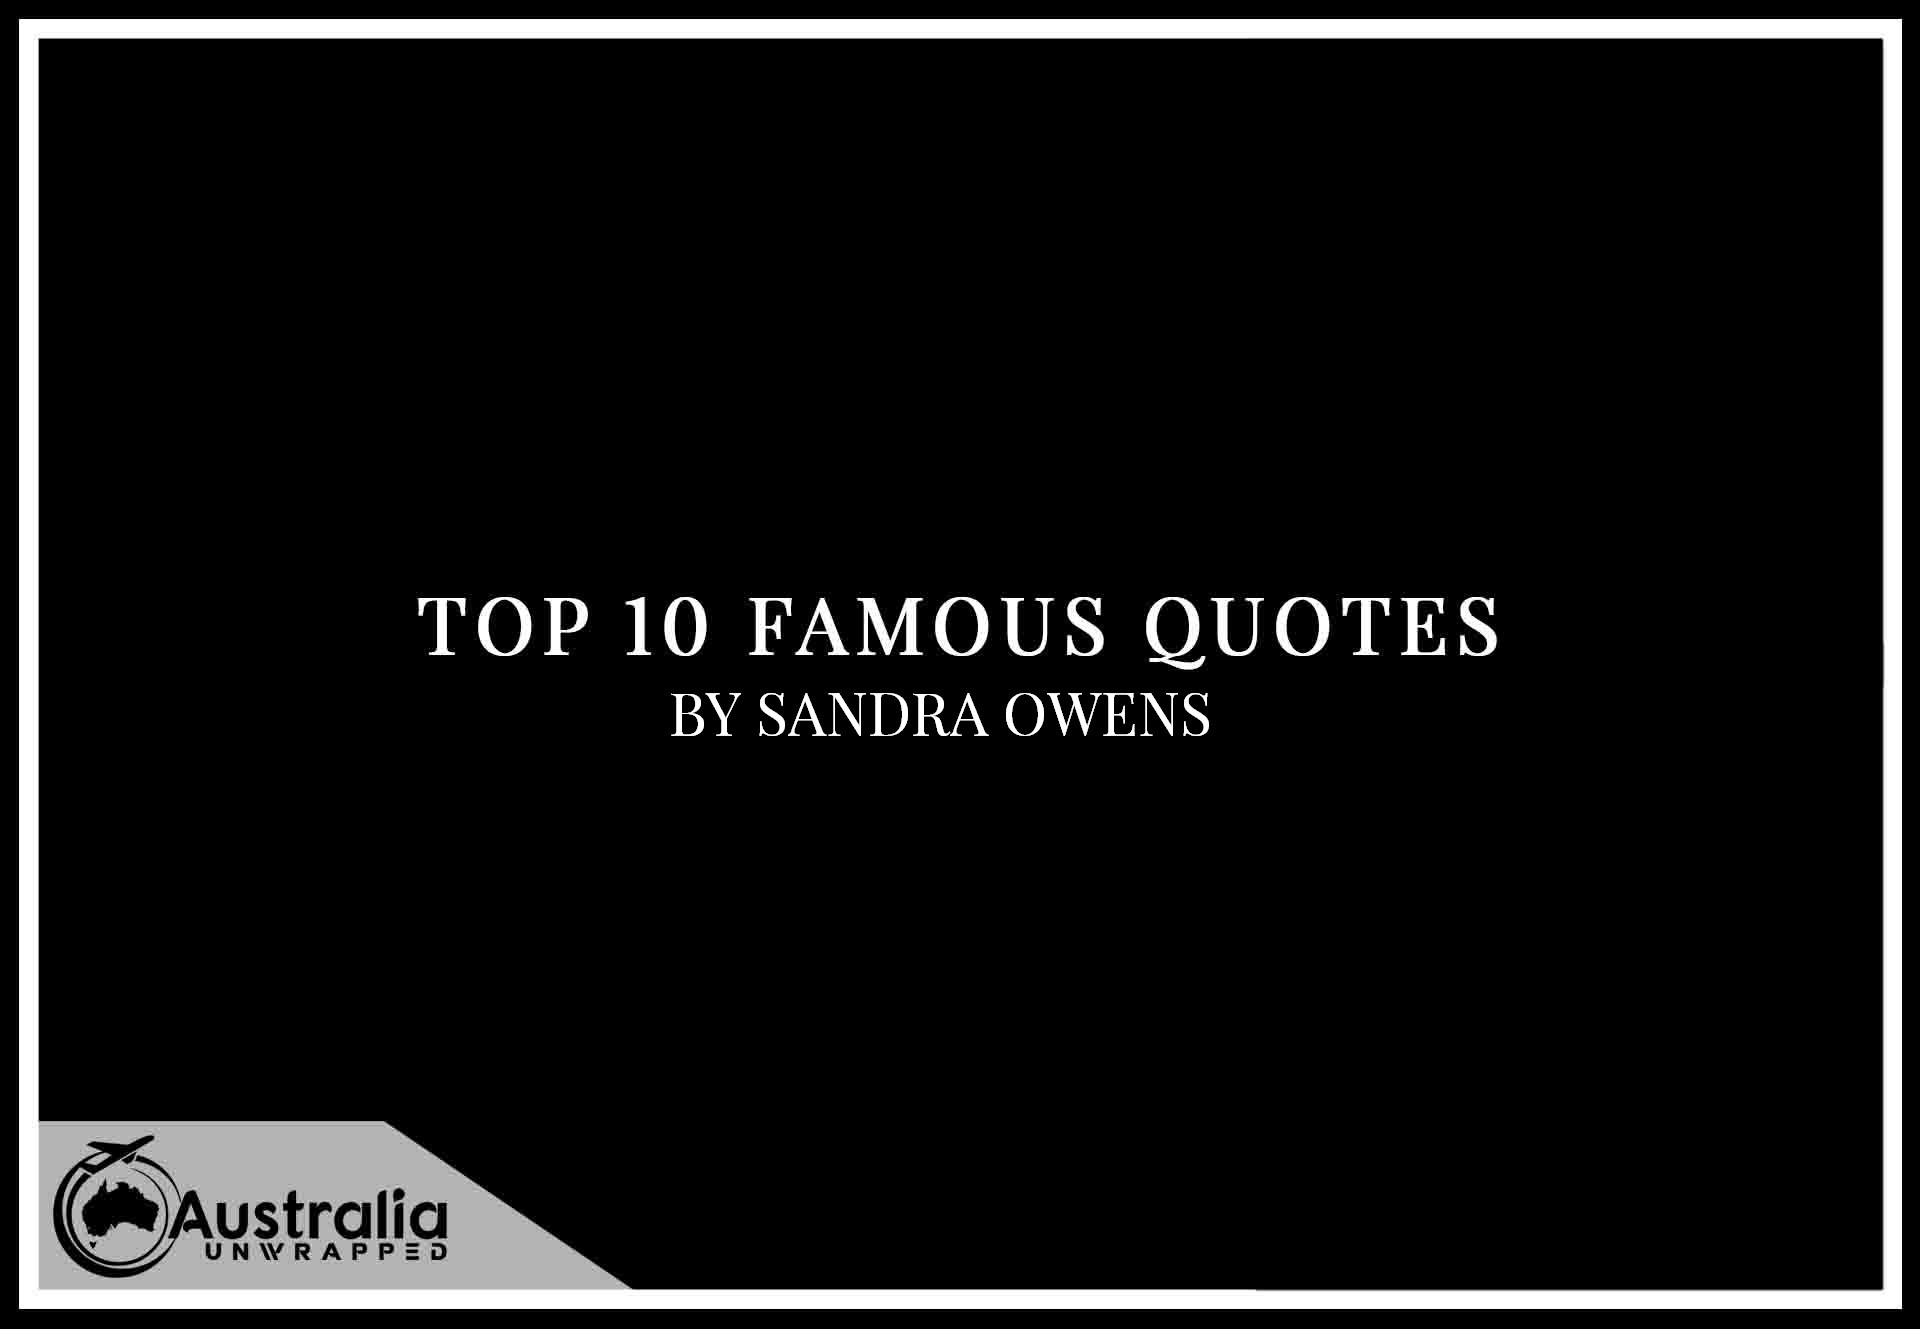 Top 10 Famous Quotes by Author Sandra Owens